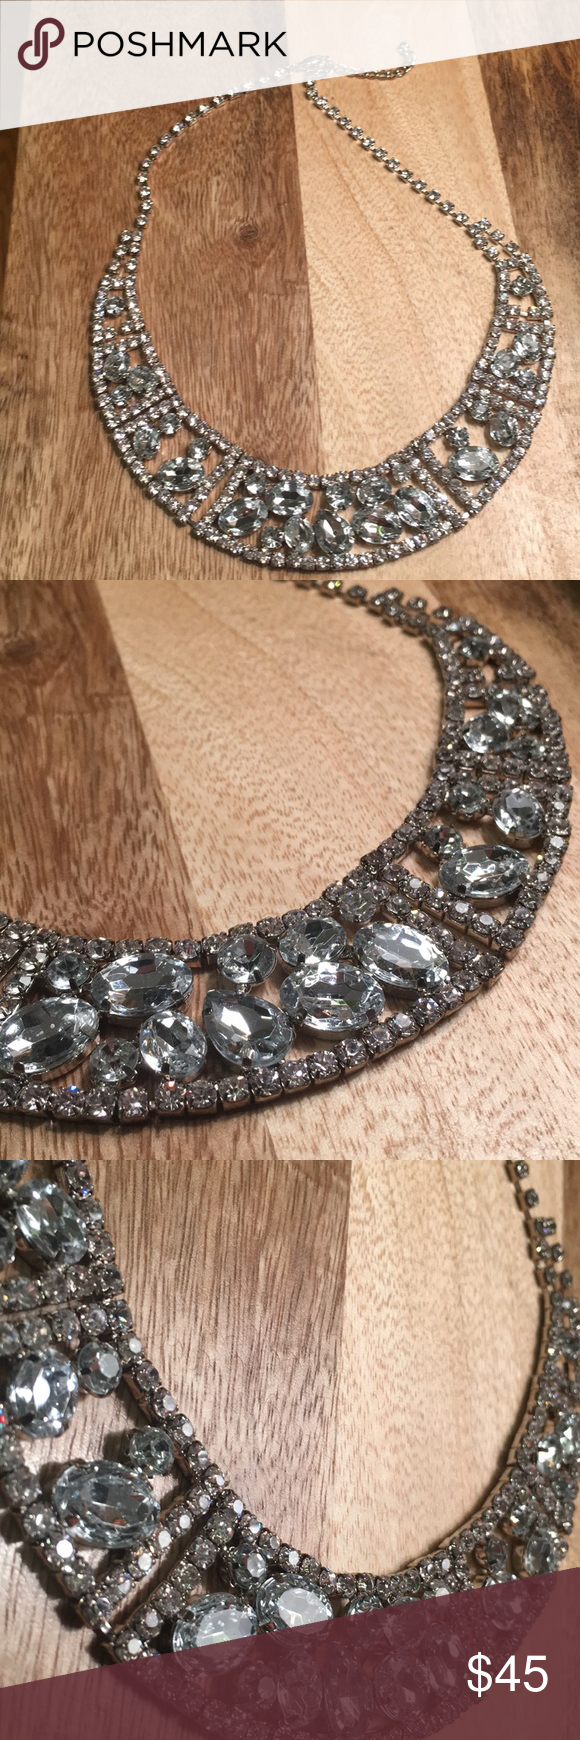 37+ Costume jewelry that does not tarnish ideas